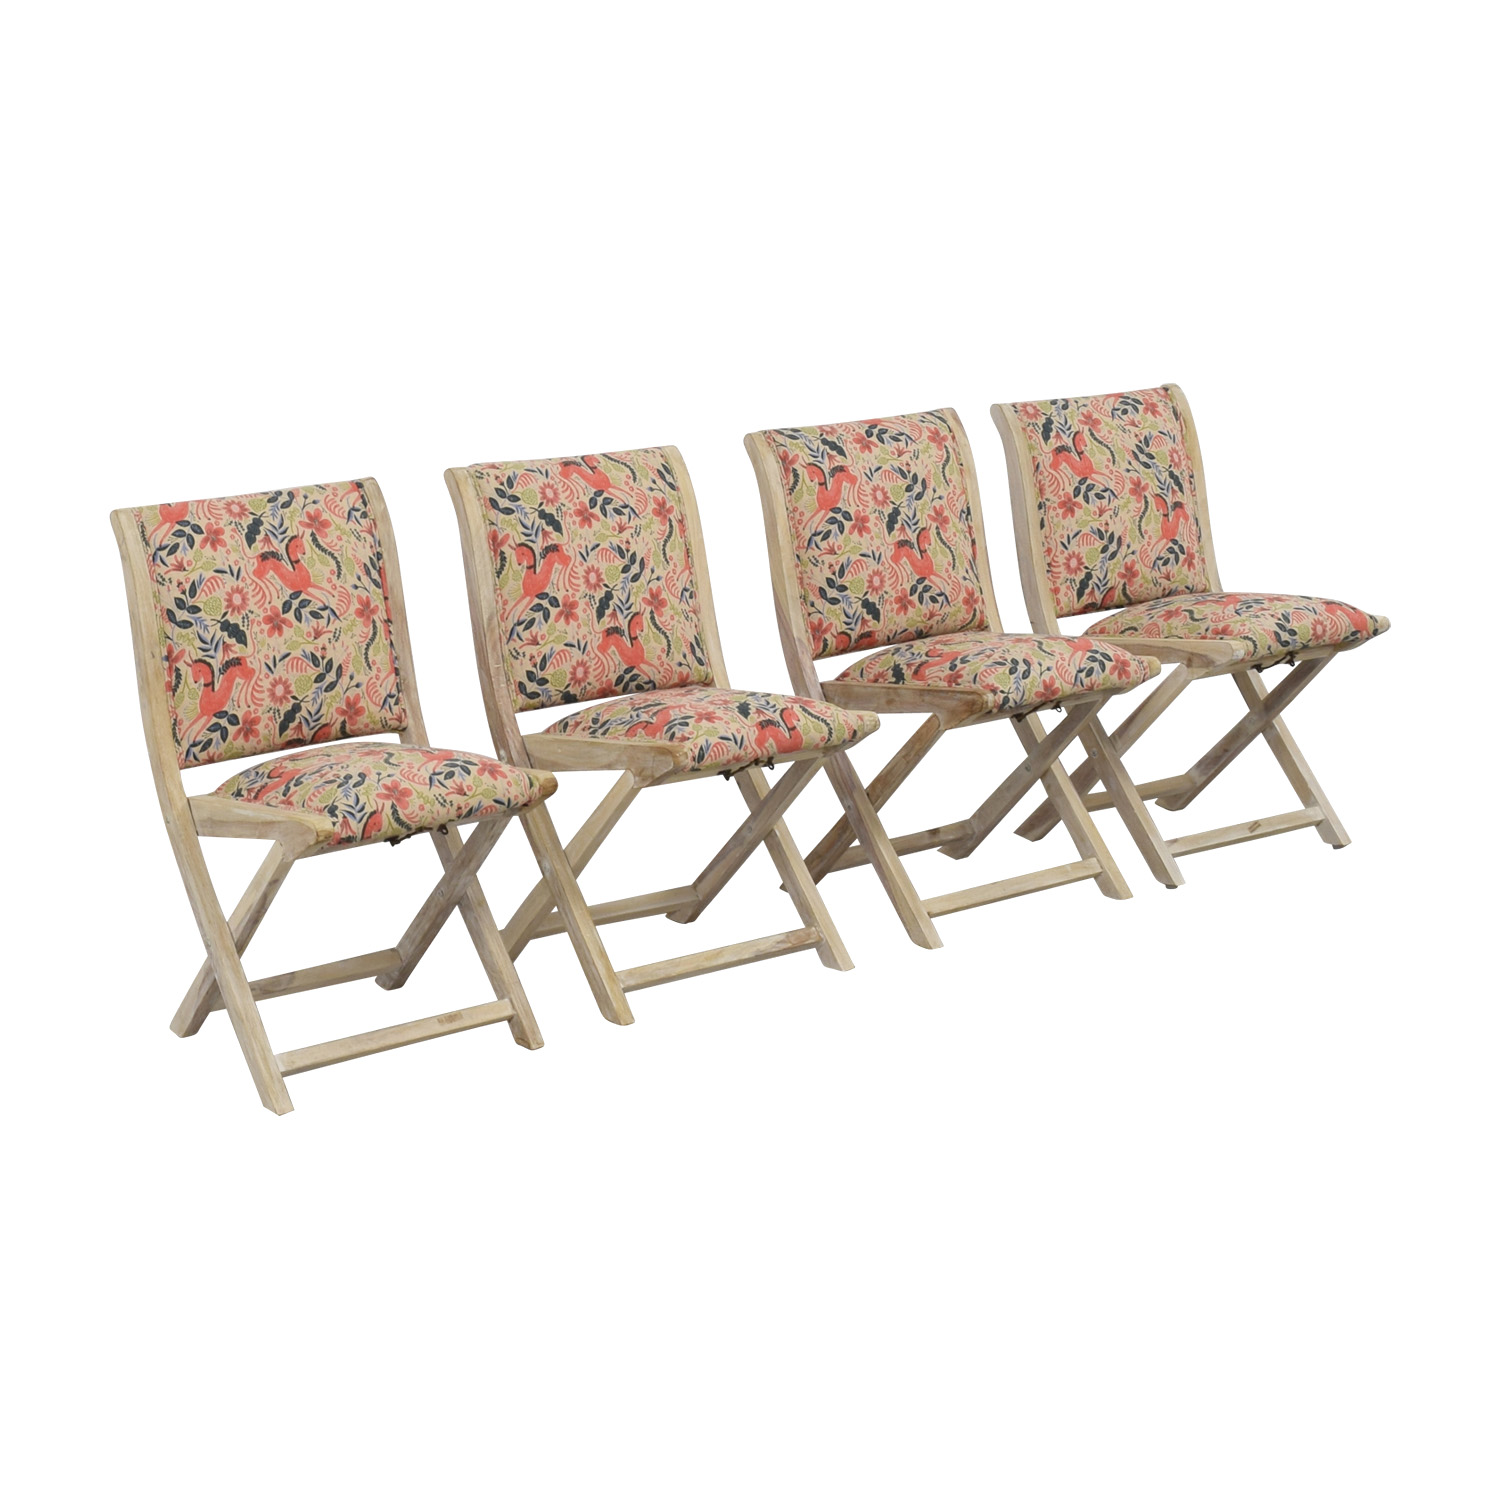 53 Off Anthropologie Anthropologie Rustic Multi Colored